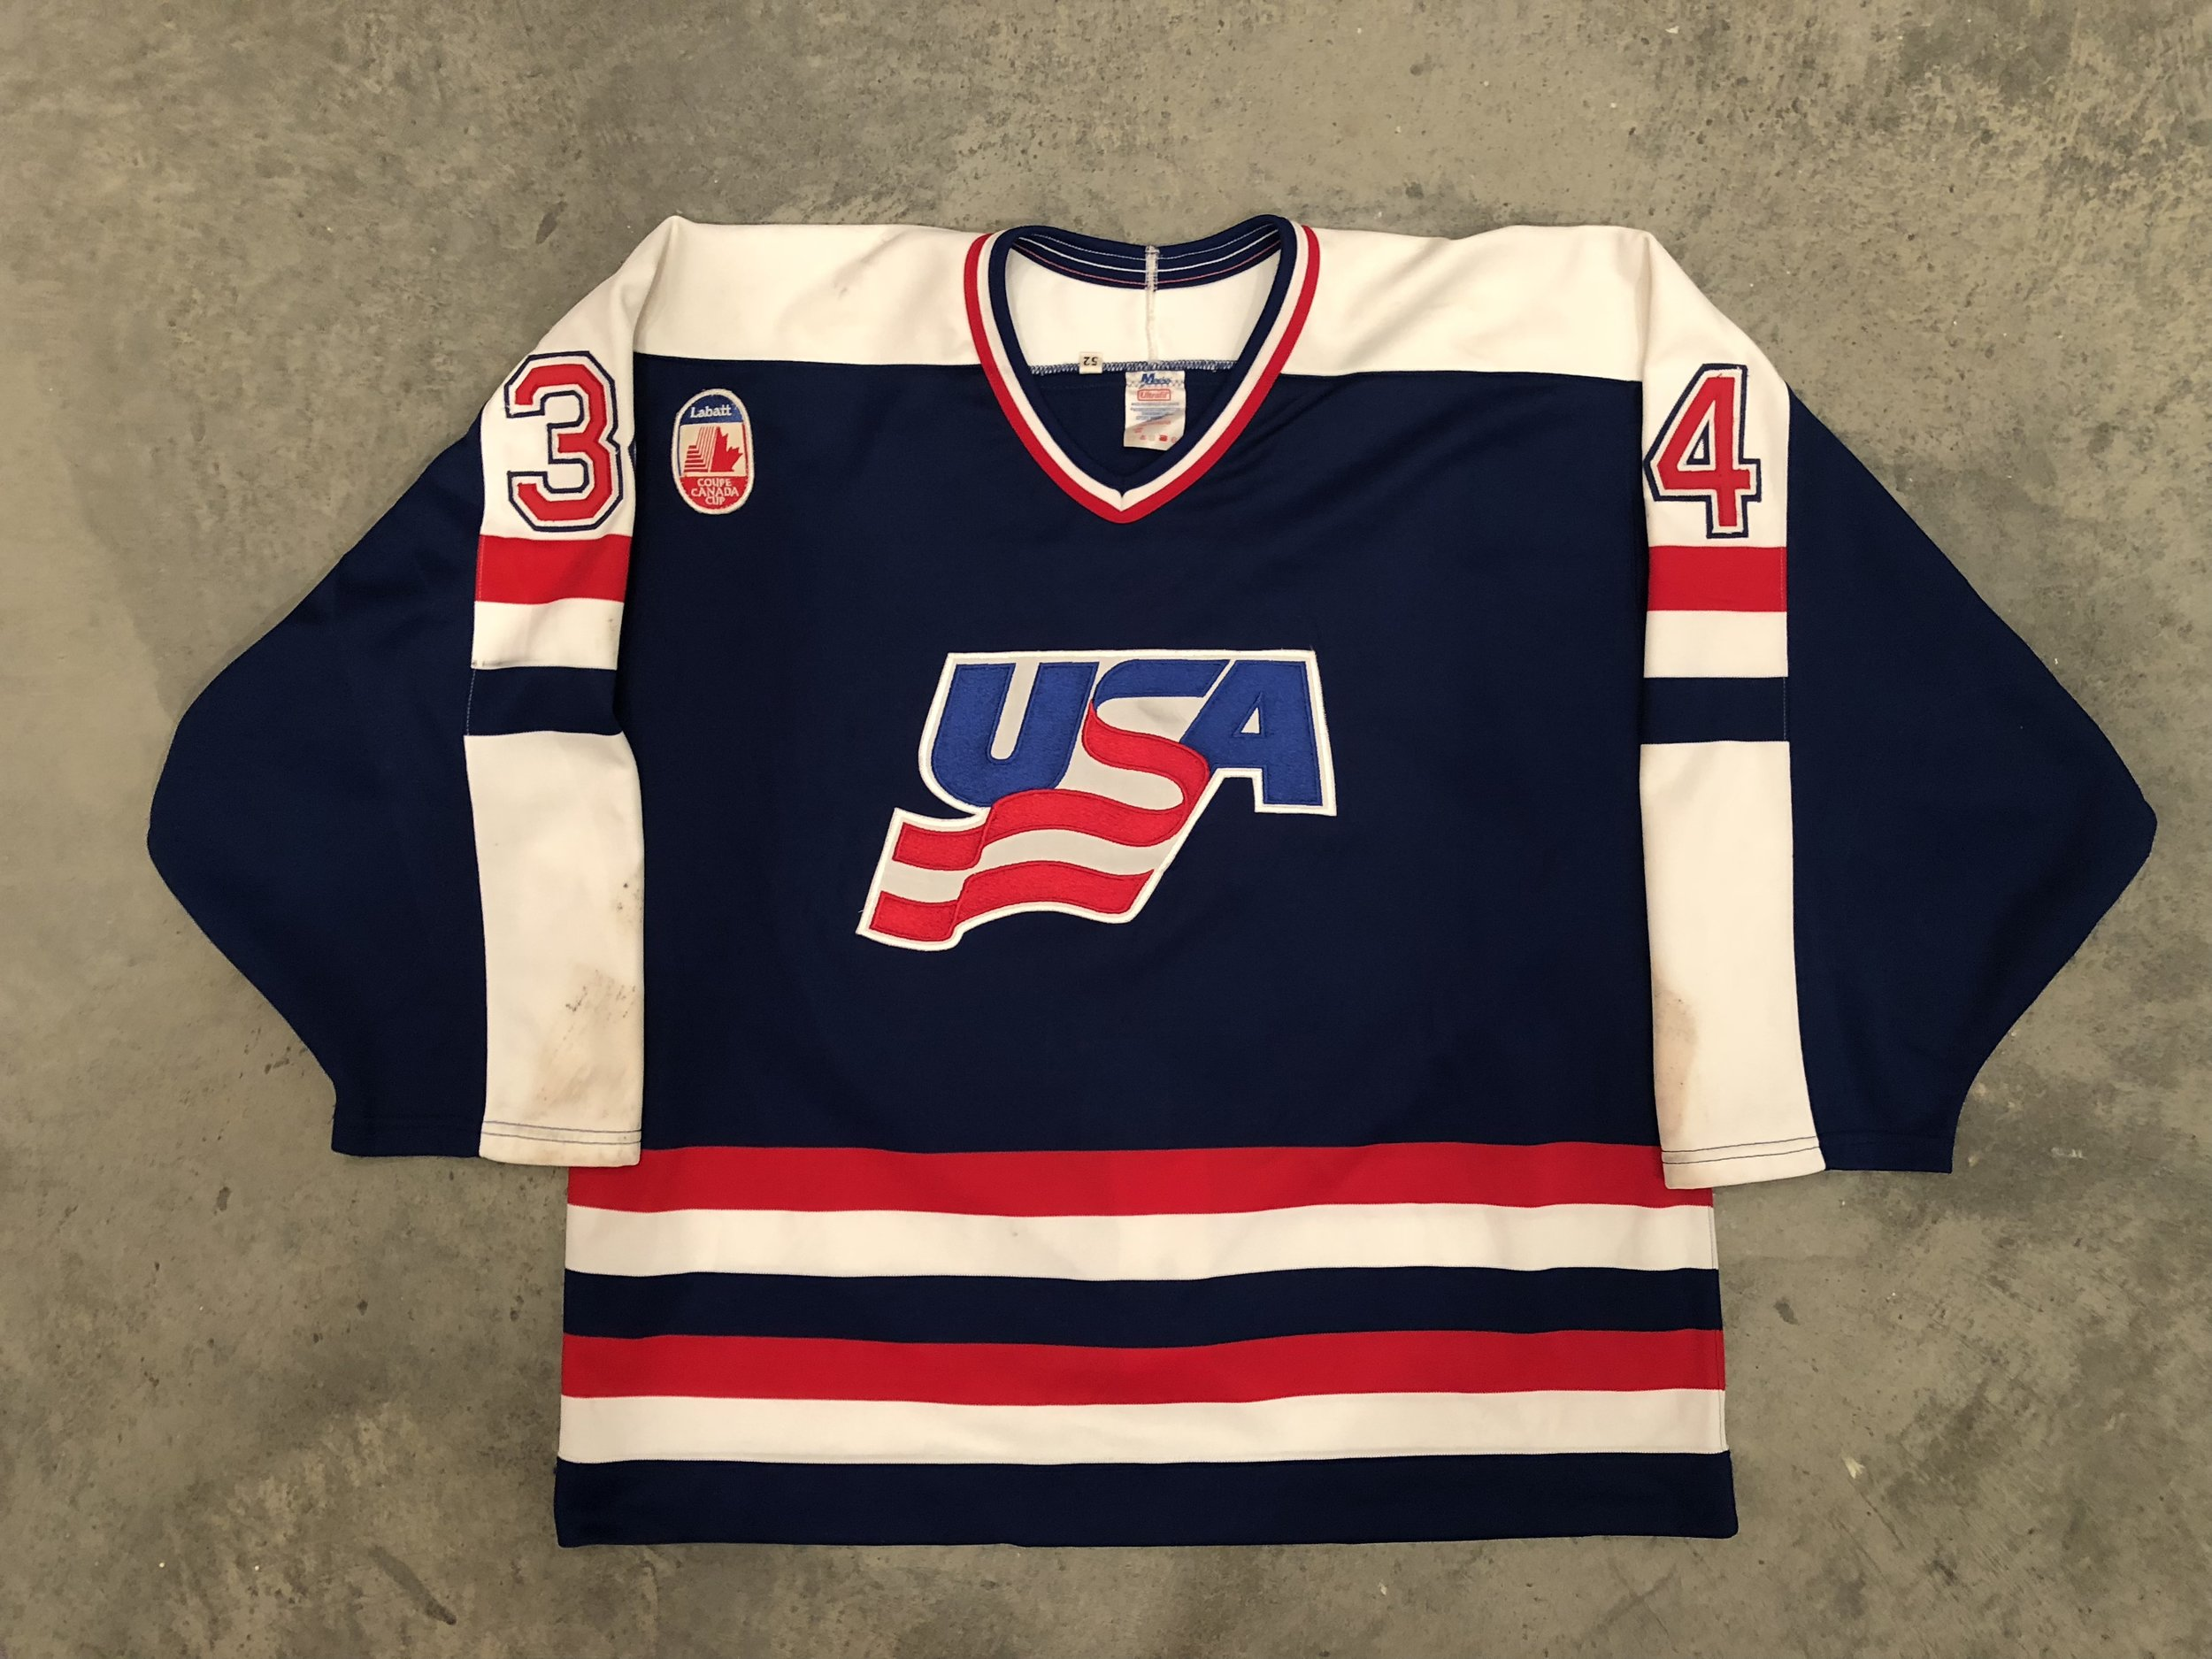 1991 Canada Cup Team USA game worn jersey